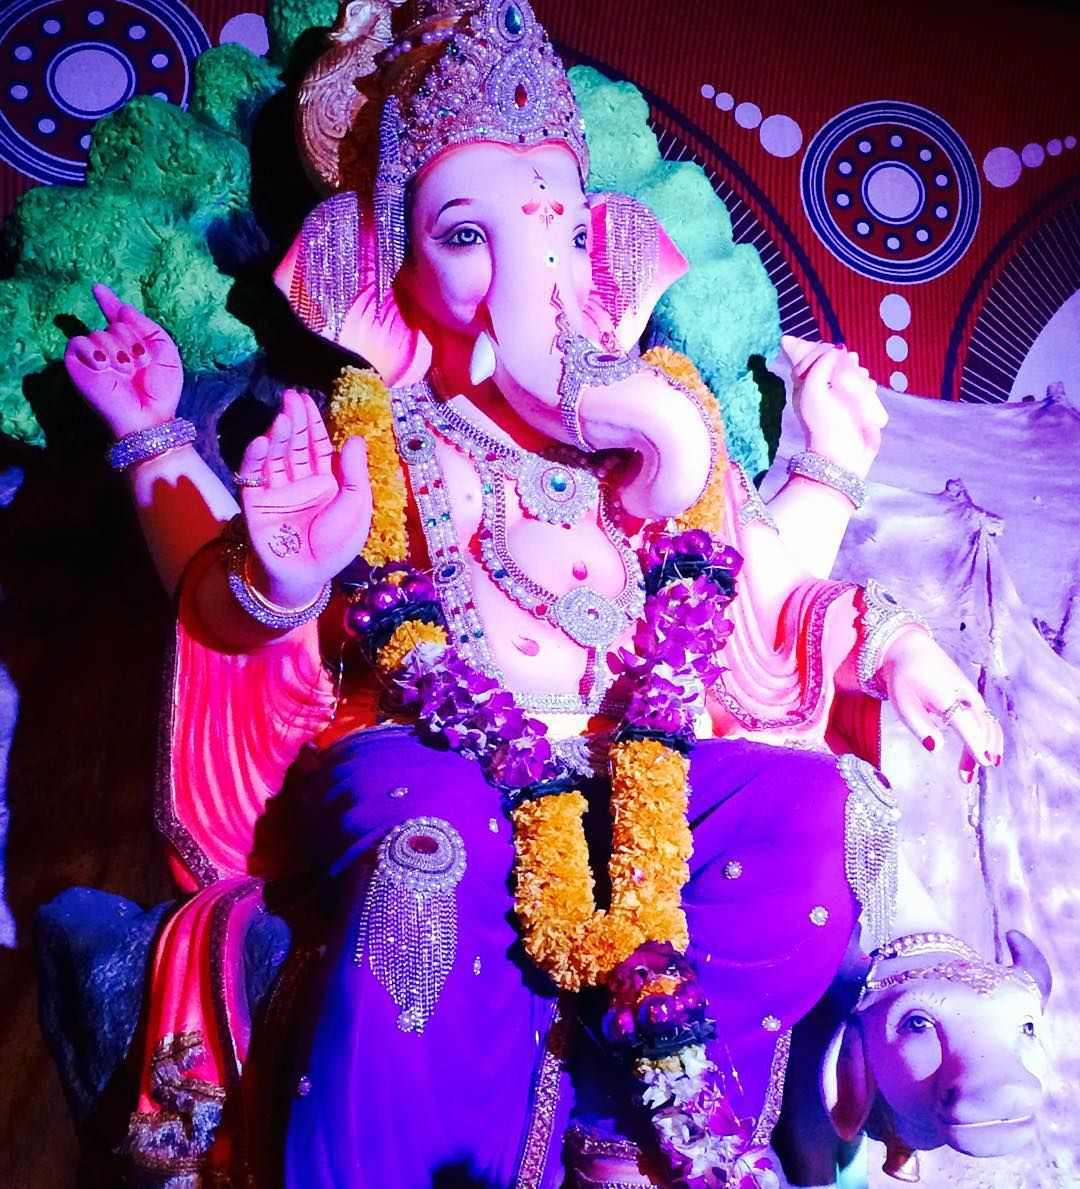 New pin for Ganpati Festival 2015 is created by by renz4989 with  #ganpatibappamorya #ganpati #ganpatibappa